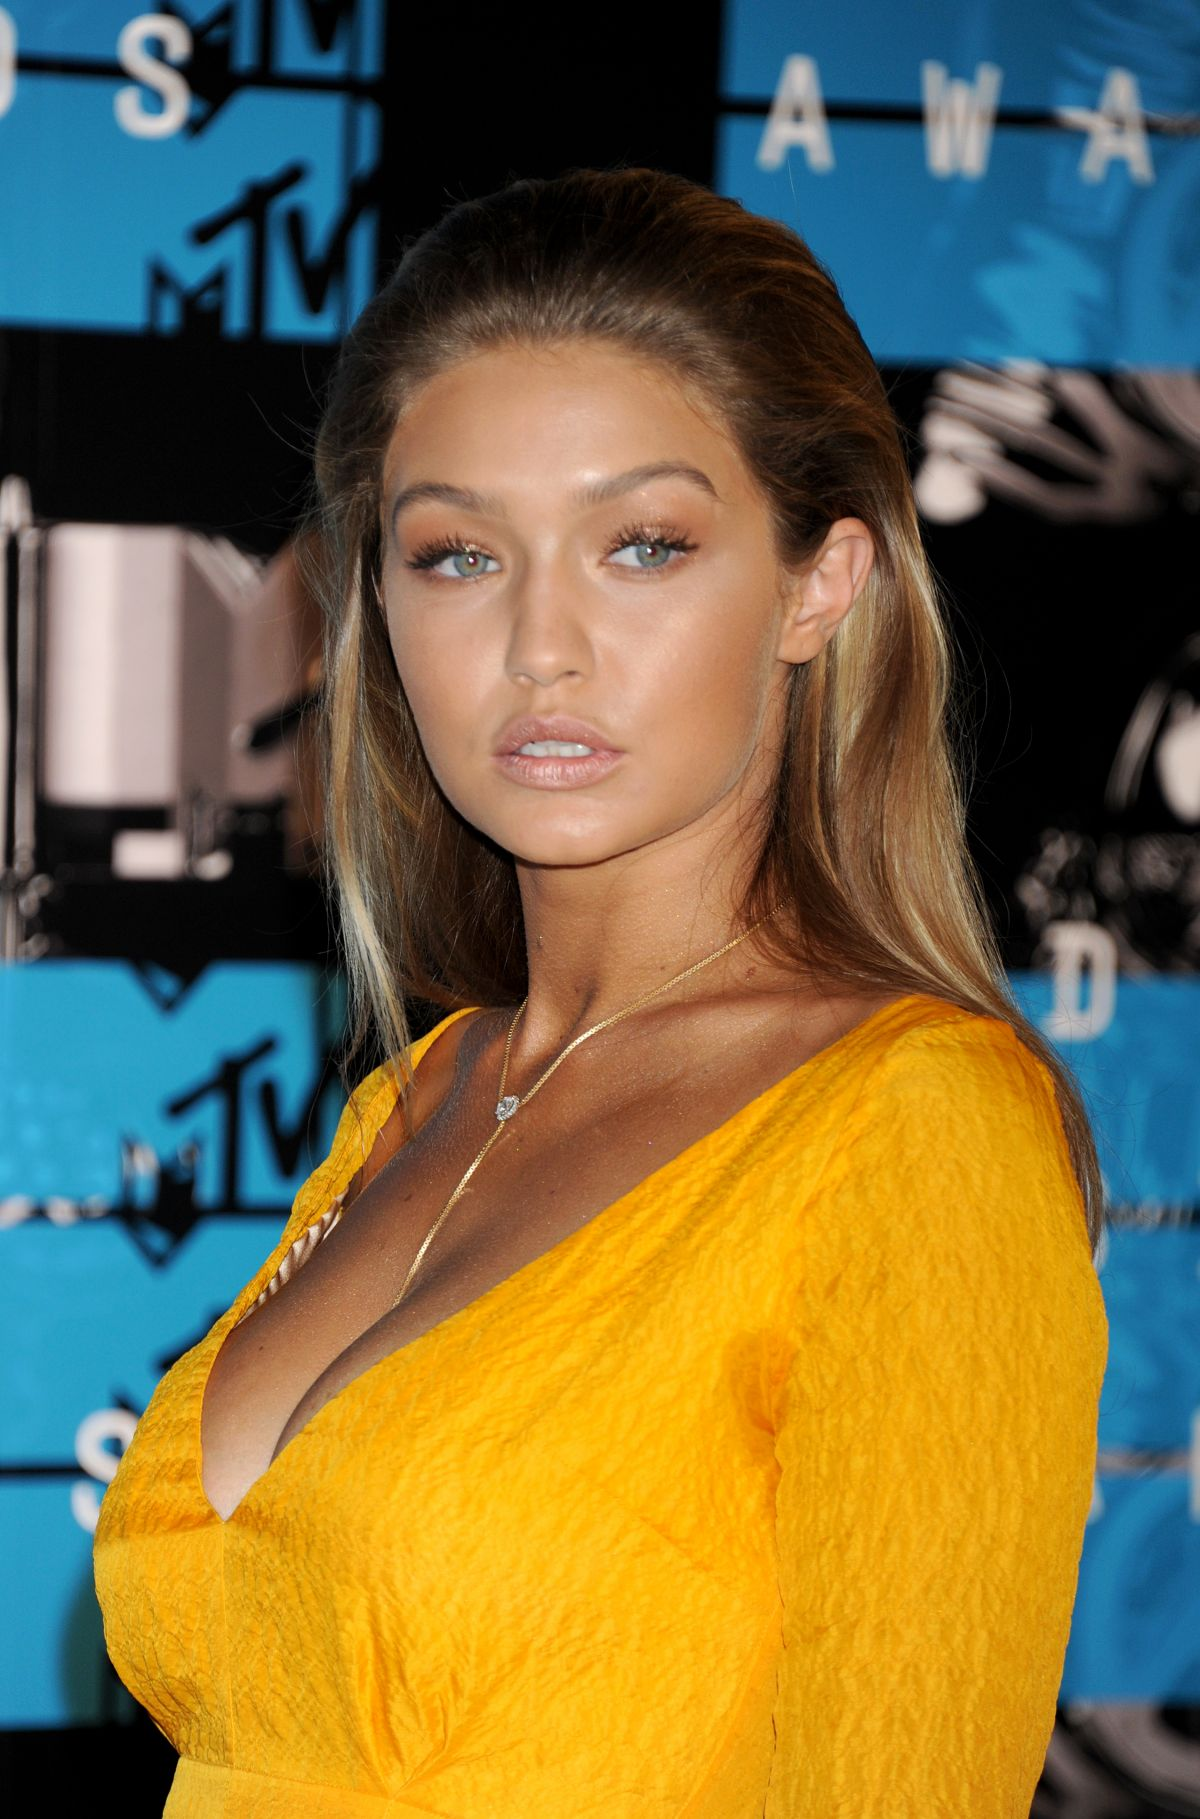 Gigi Hadid Best Beauty Trends: GIGI HADID At MTV Video Music Awards 2015 In Los Angeles